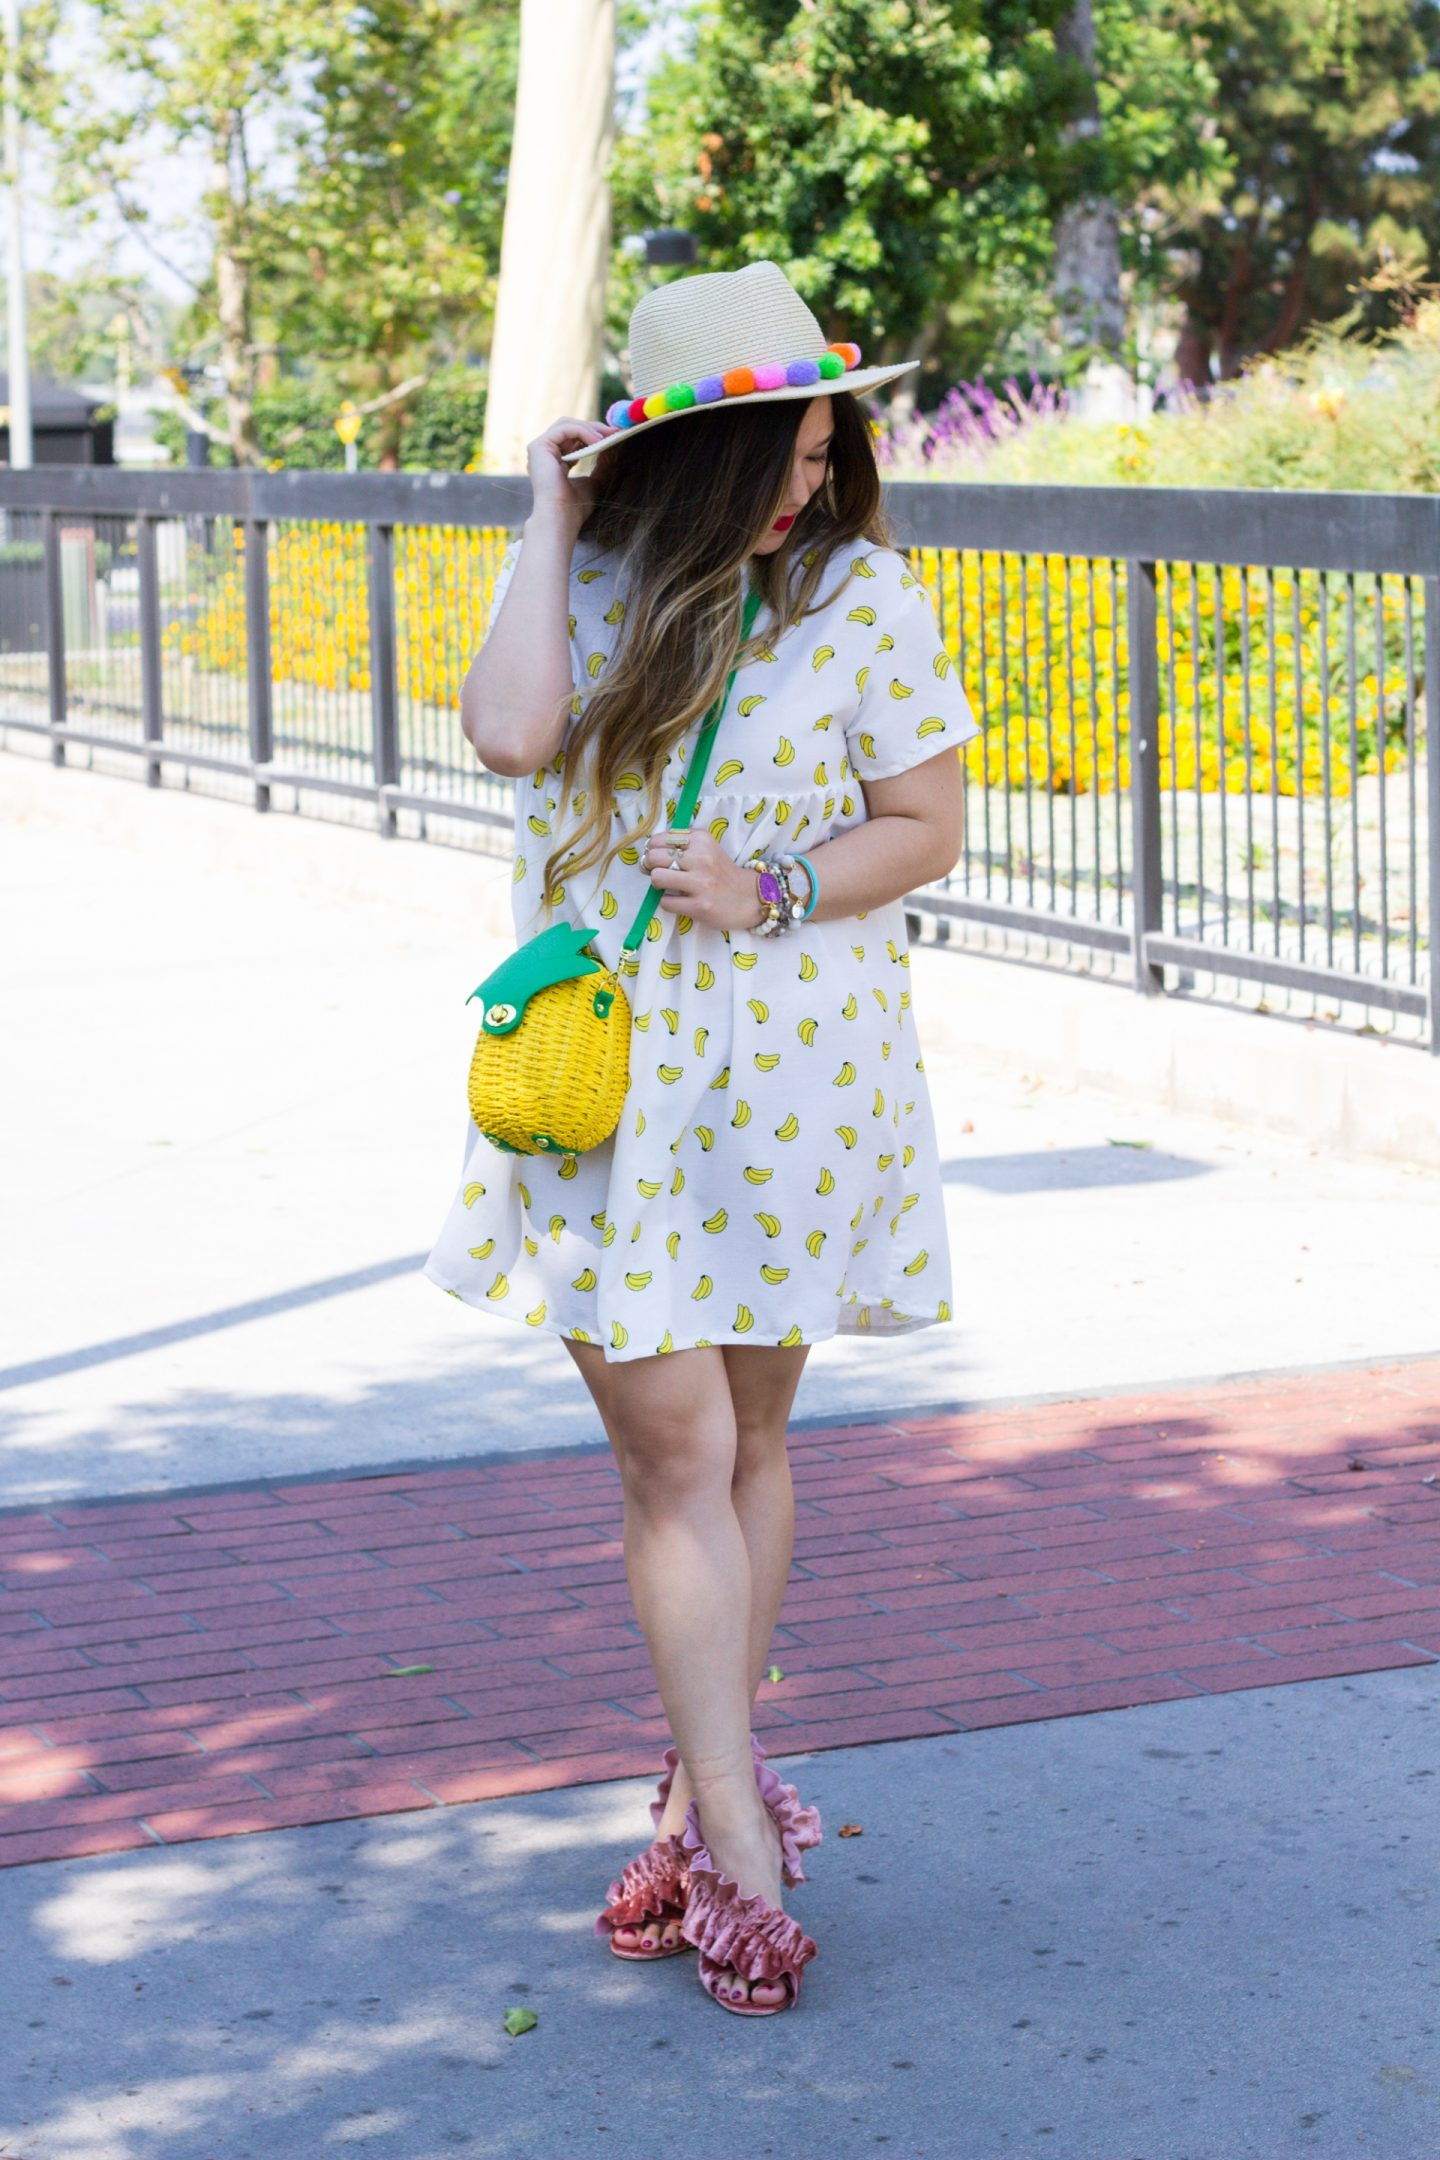 Fruit Fashion Trend: Banana Print Dress + Pineapple Bag